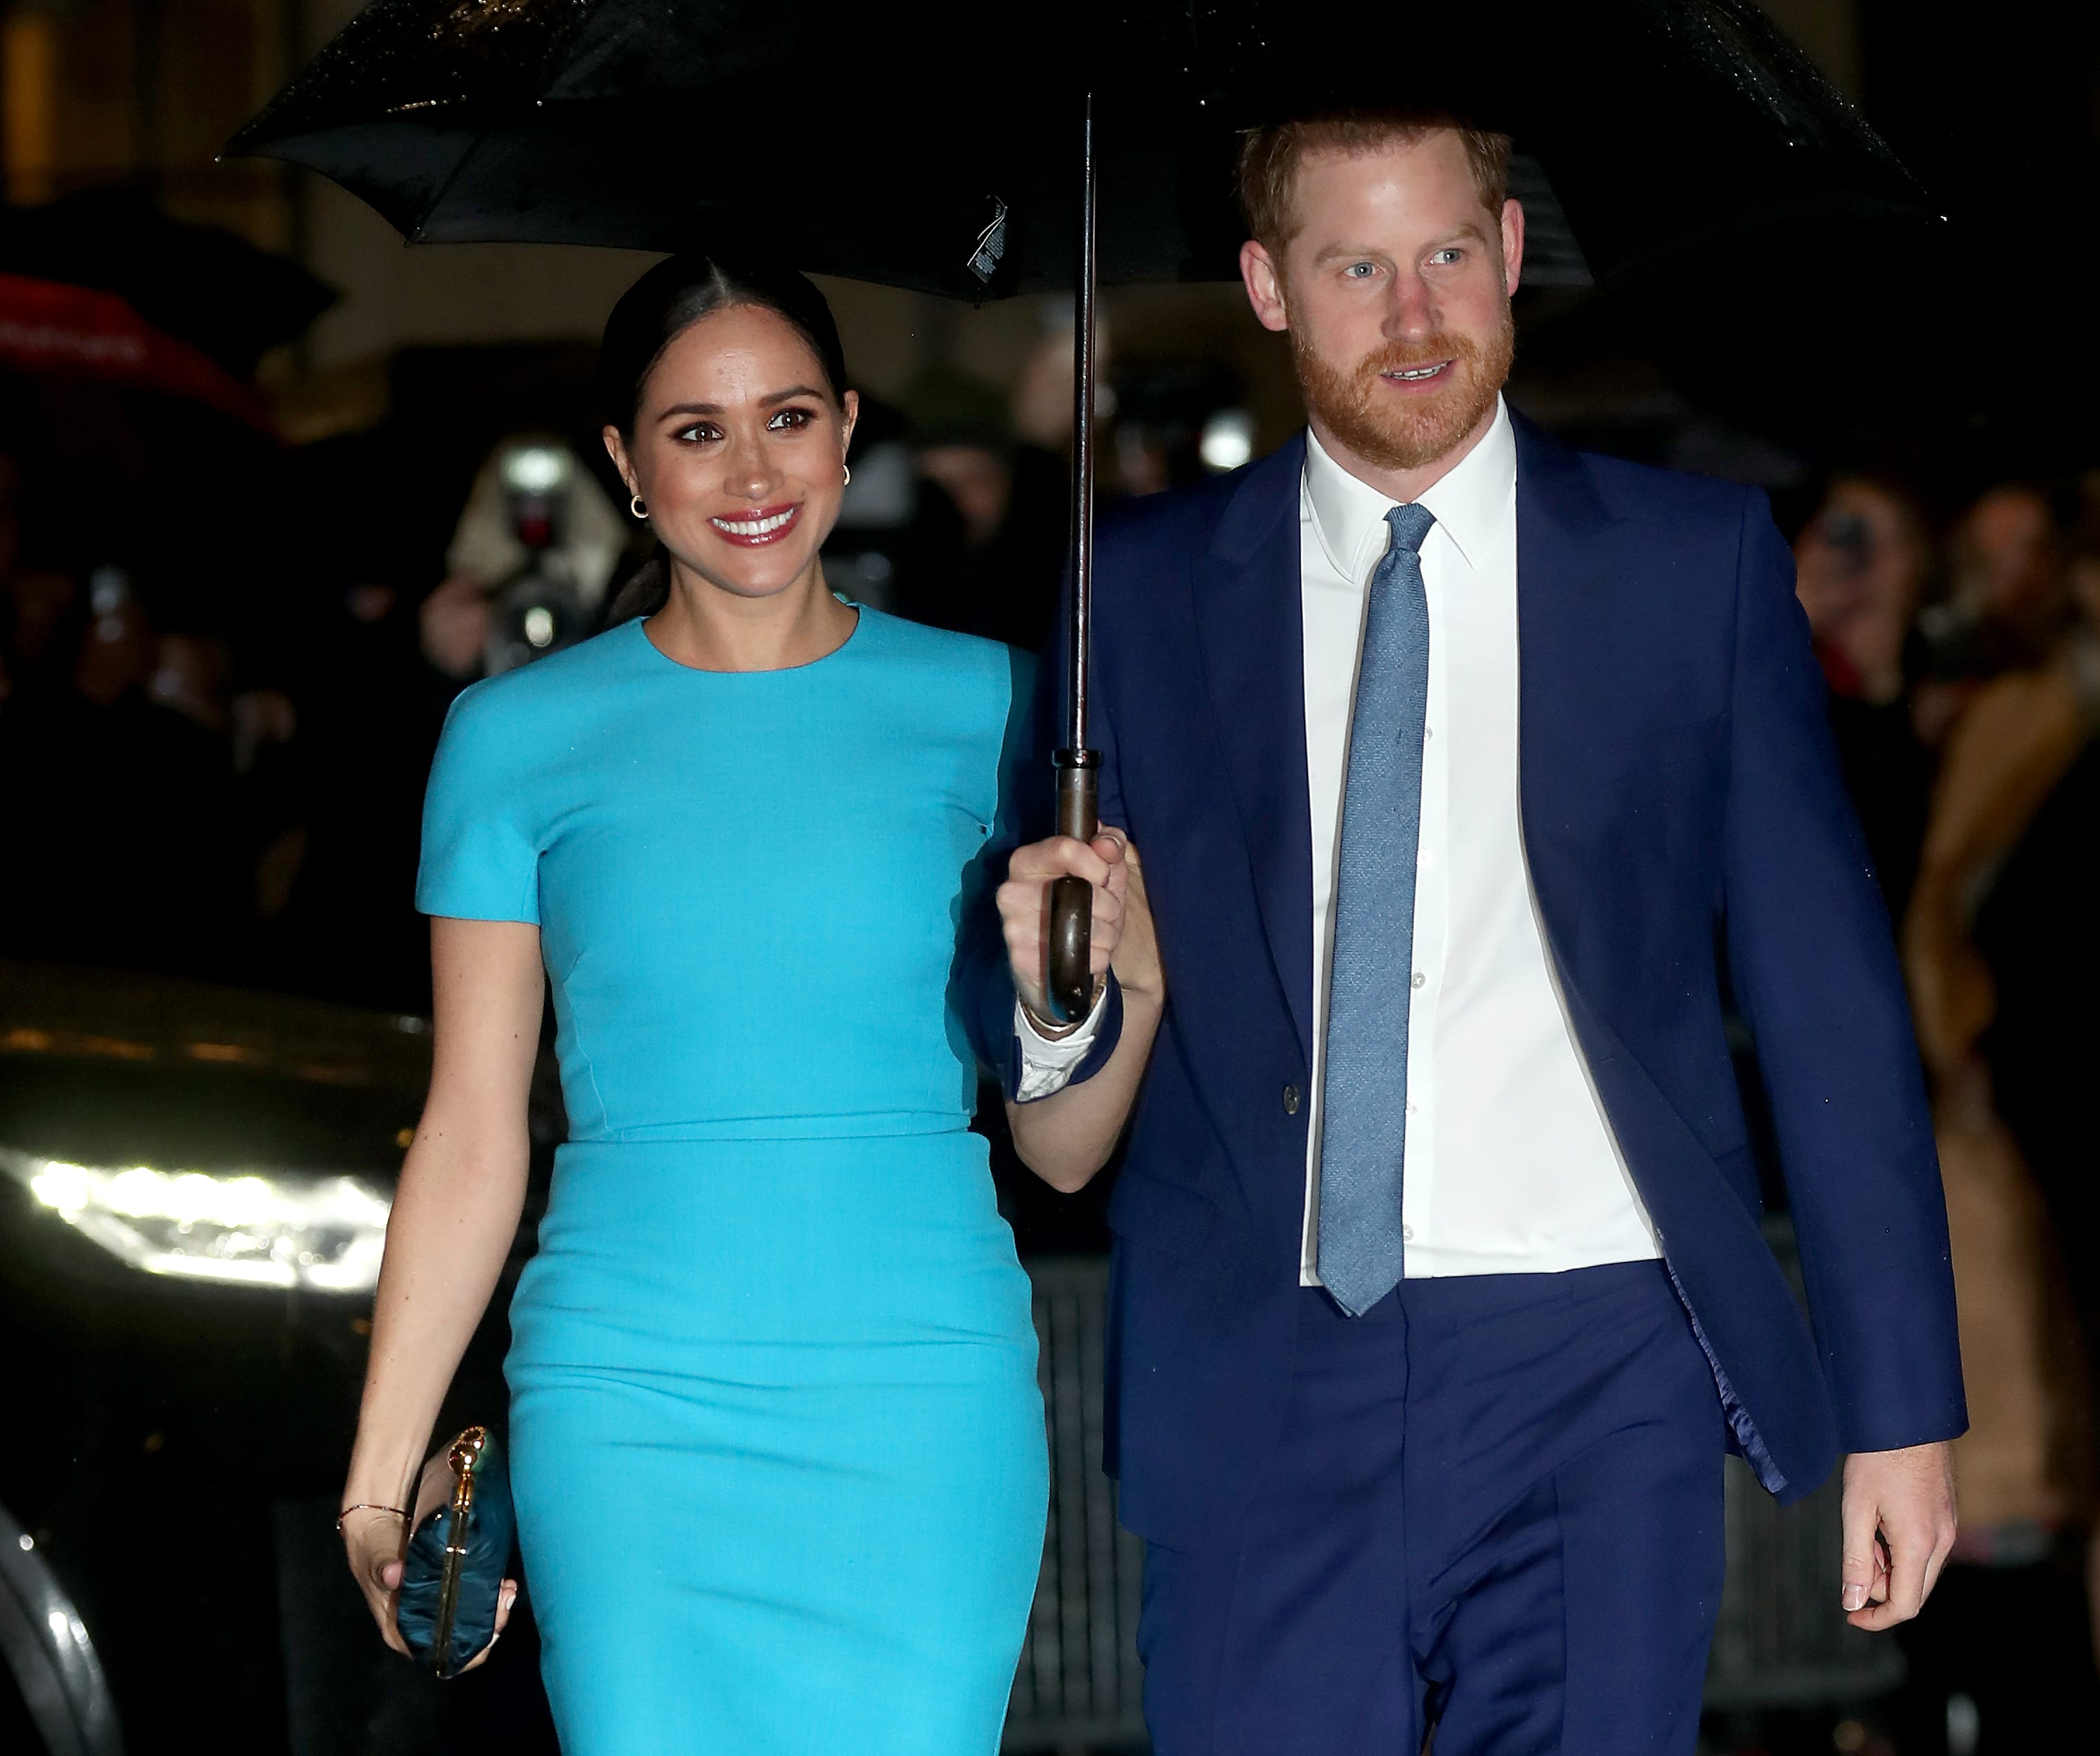 Prince Harry and Meghan Are Hosting a Special Talk on Improving the Digital World